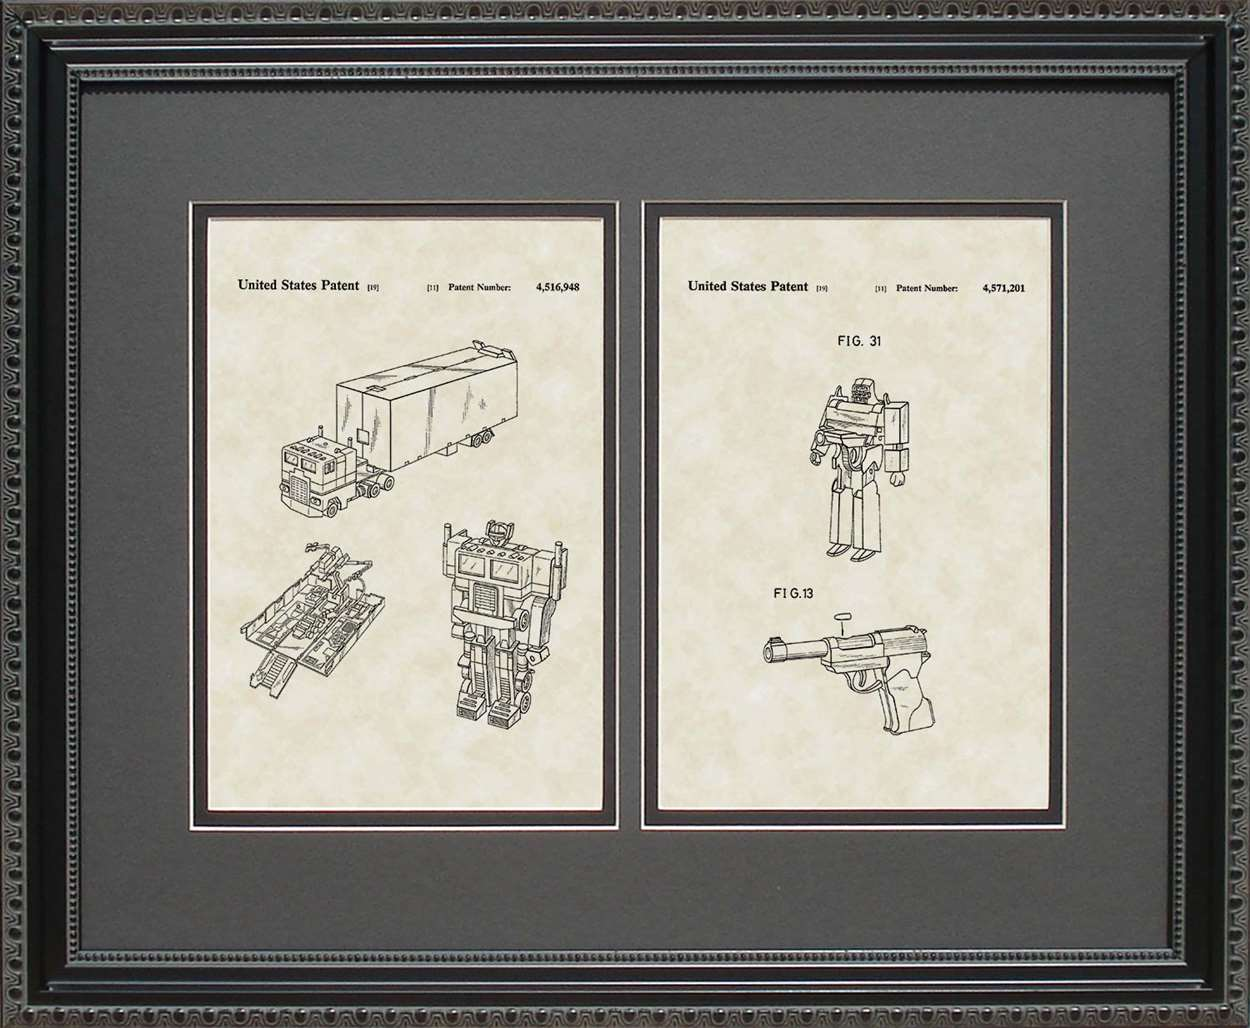 Transformers Patents, 16x20